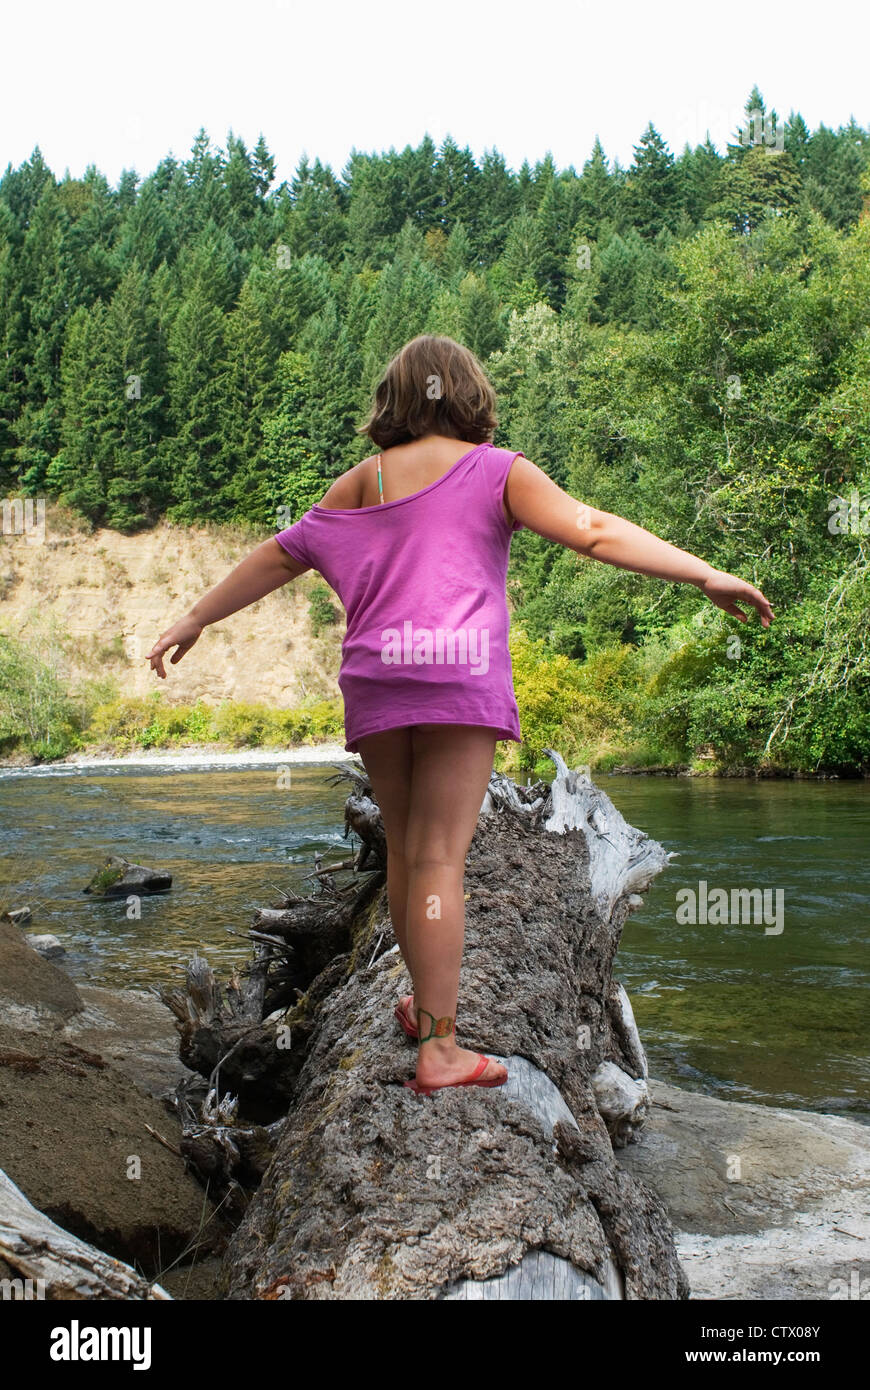 A young girl balancing on fallen tree trunk. - Stock Image